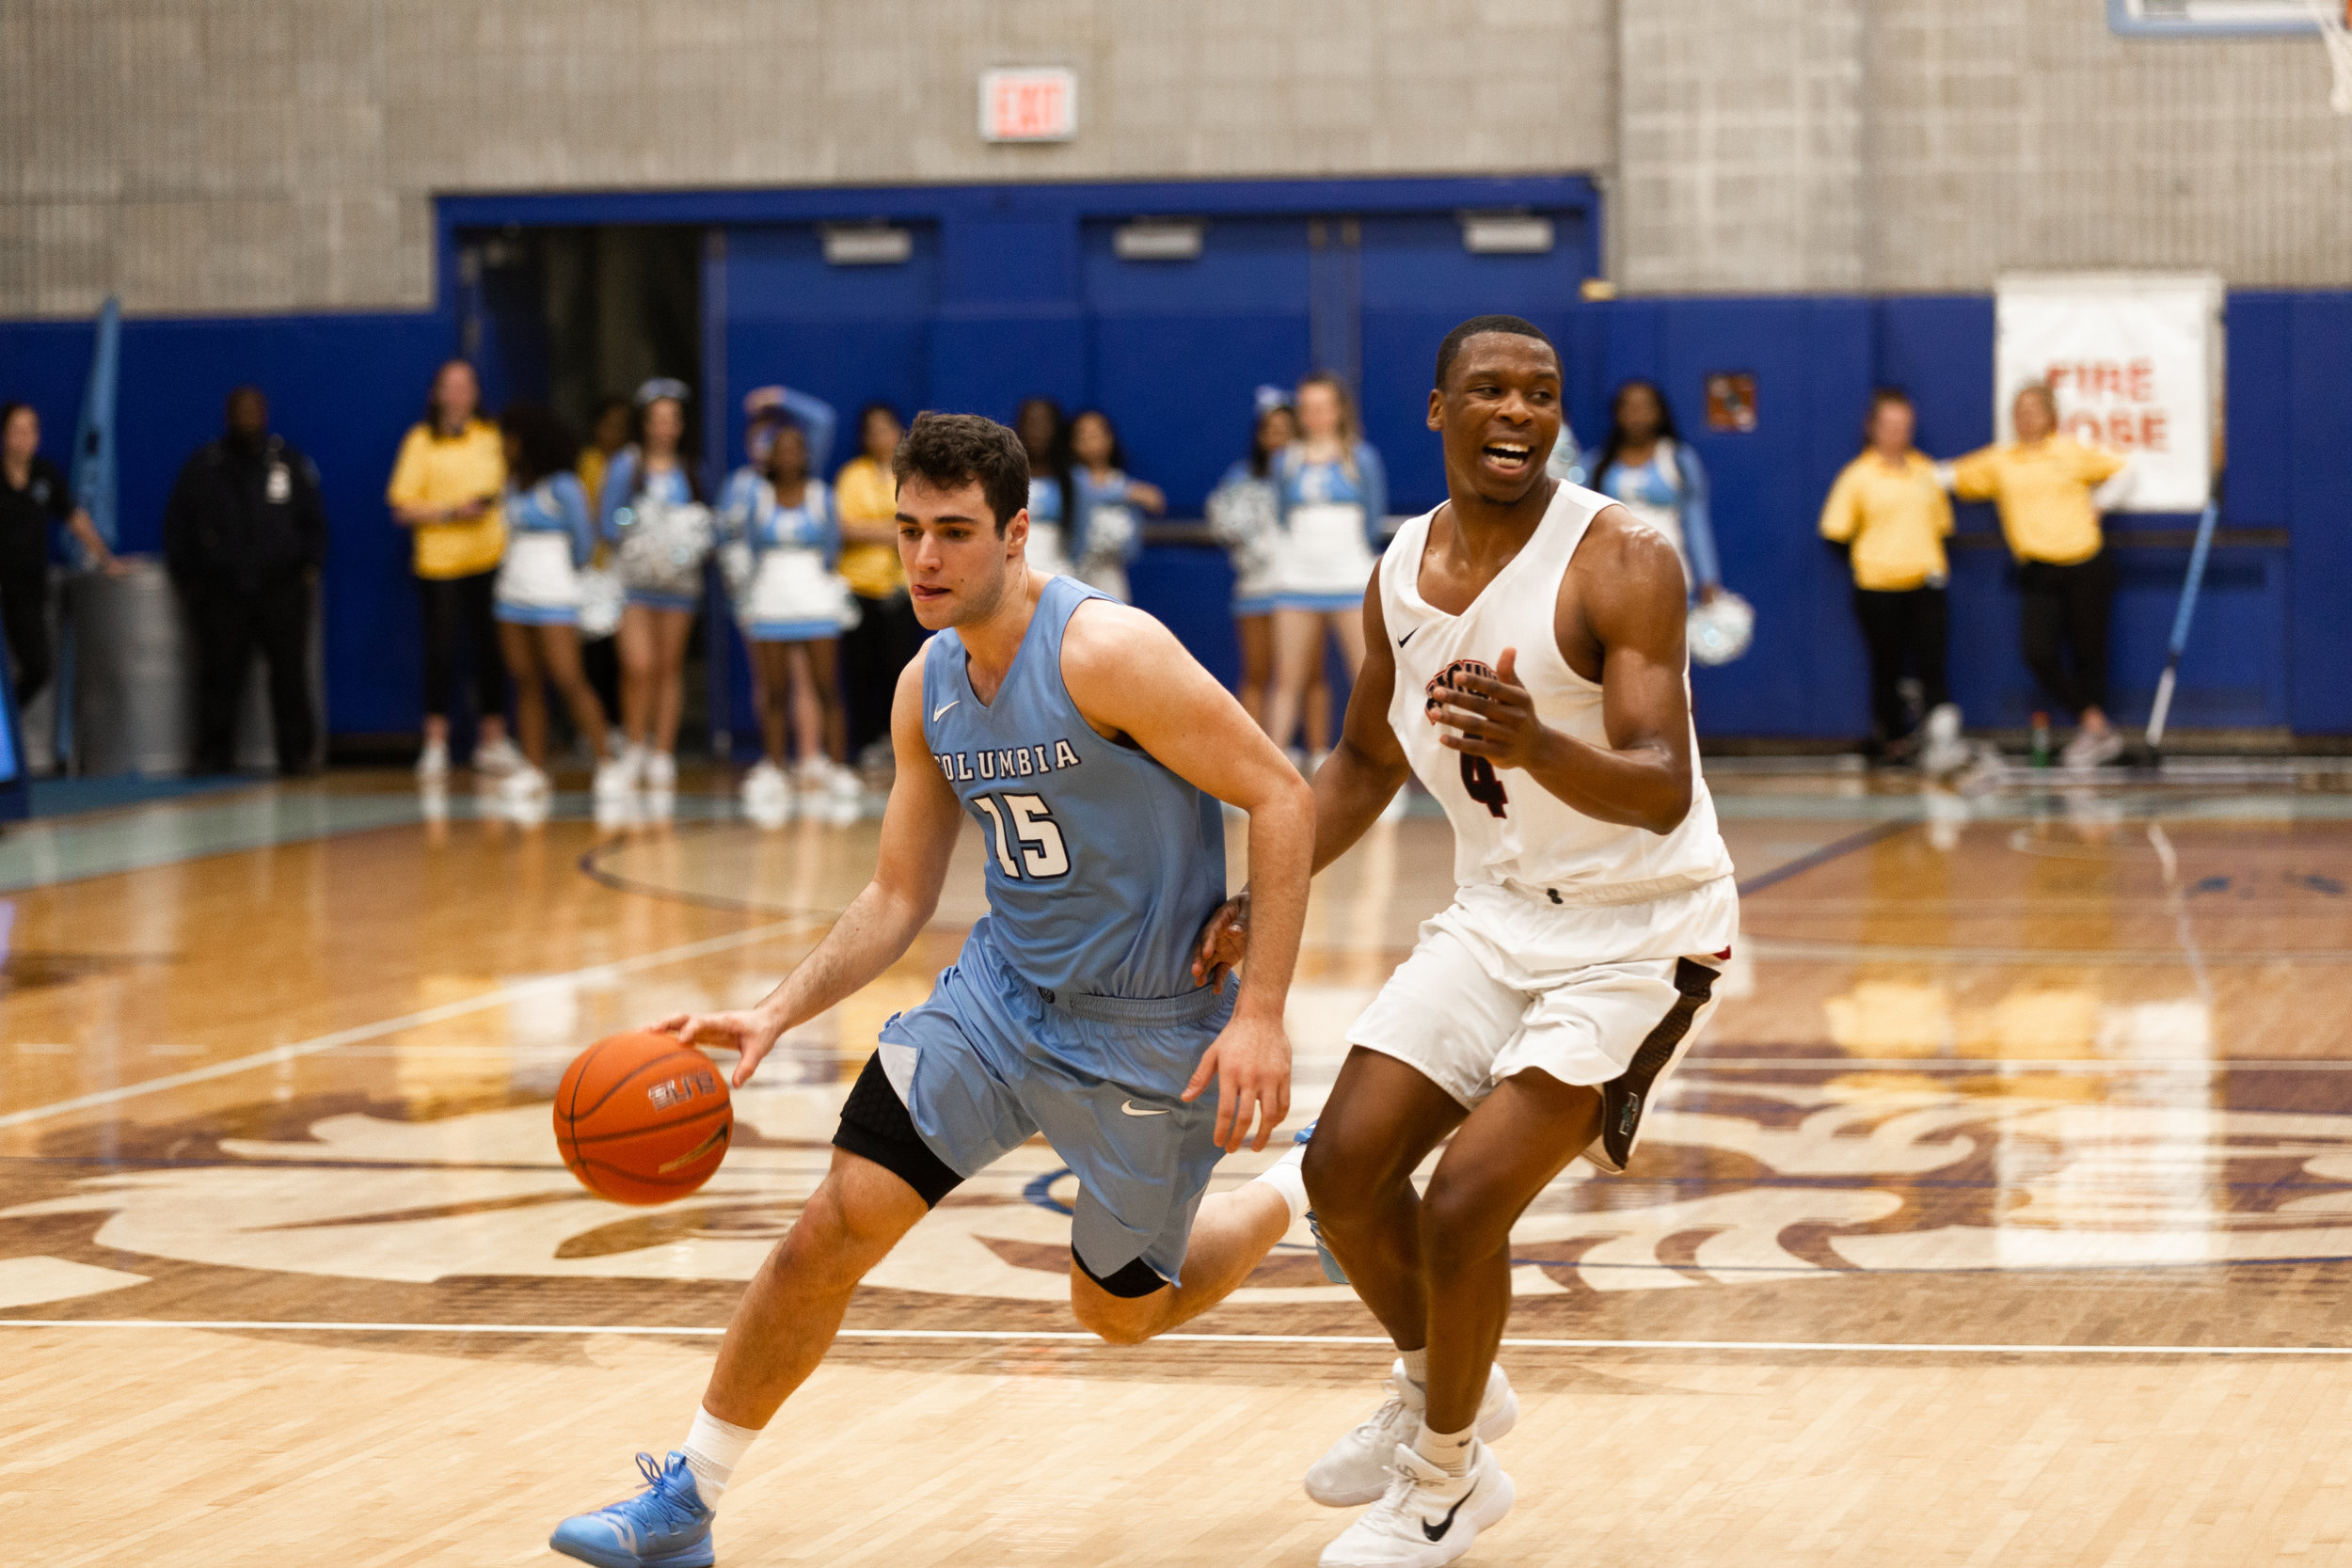 Gabe Stefanini acts as the focal point in the new-look Lions offense, driving some of the team's most effective plays such as the corner pick-and-roll. (Photo: Ben Goldsmith)